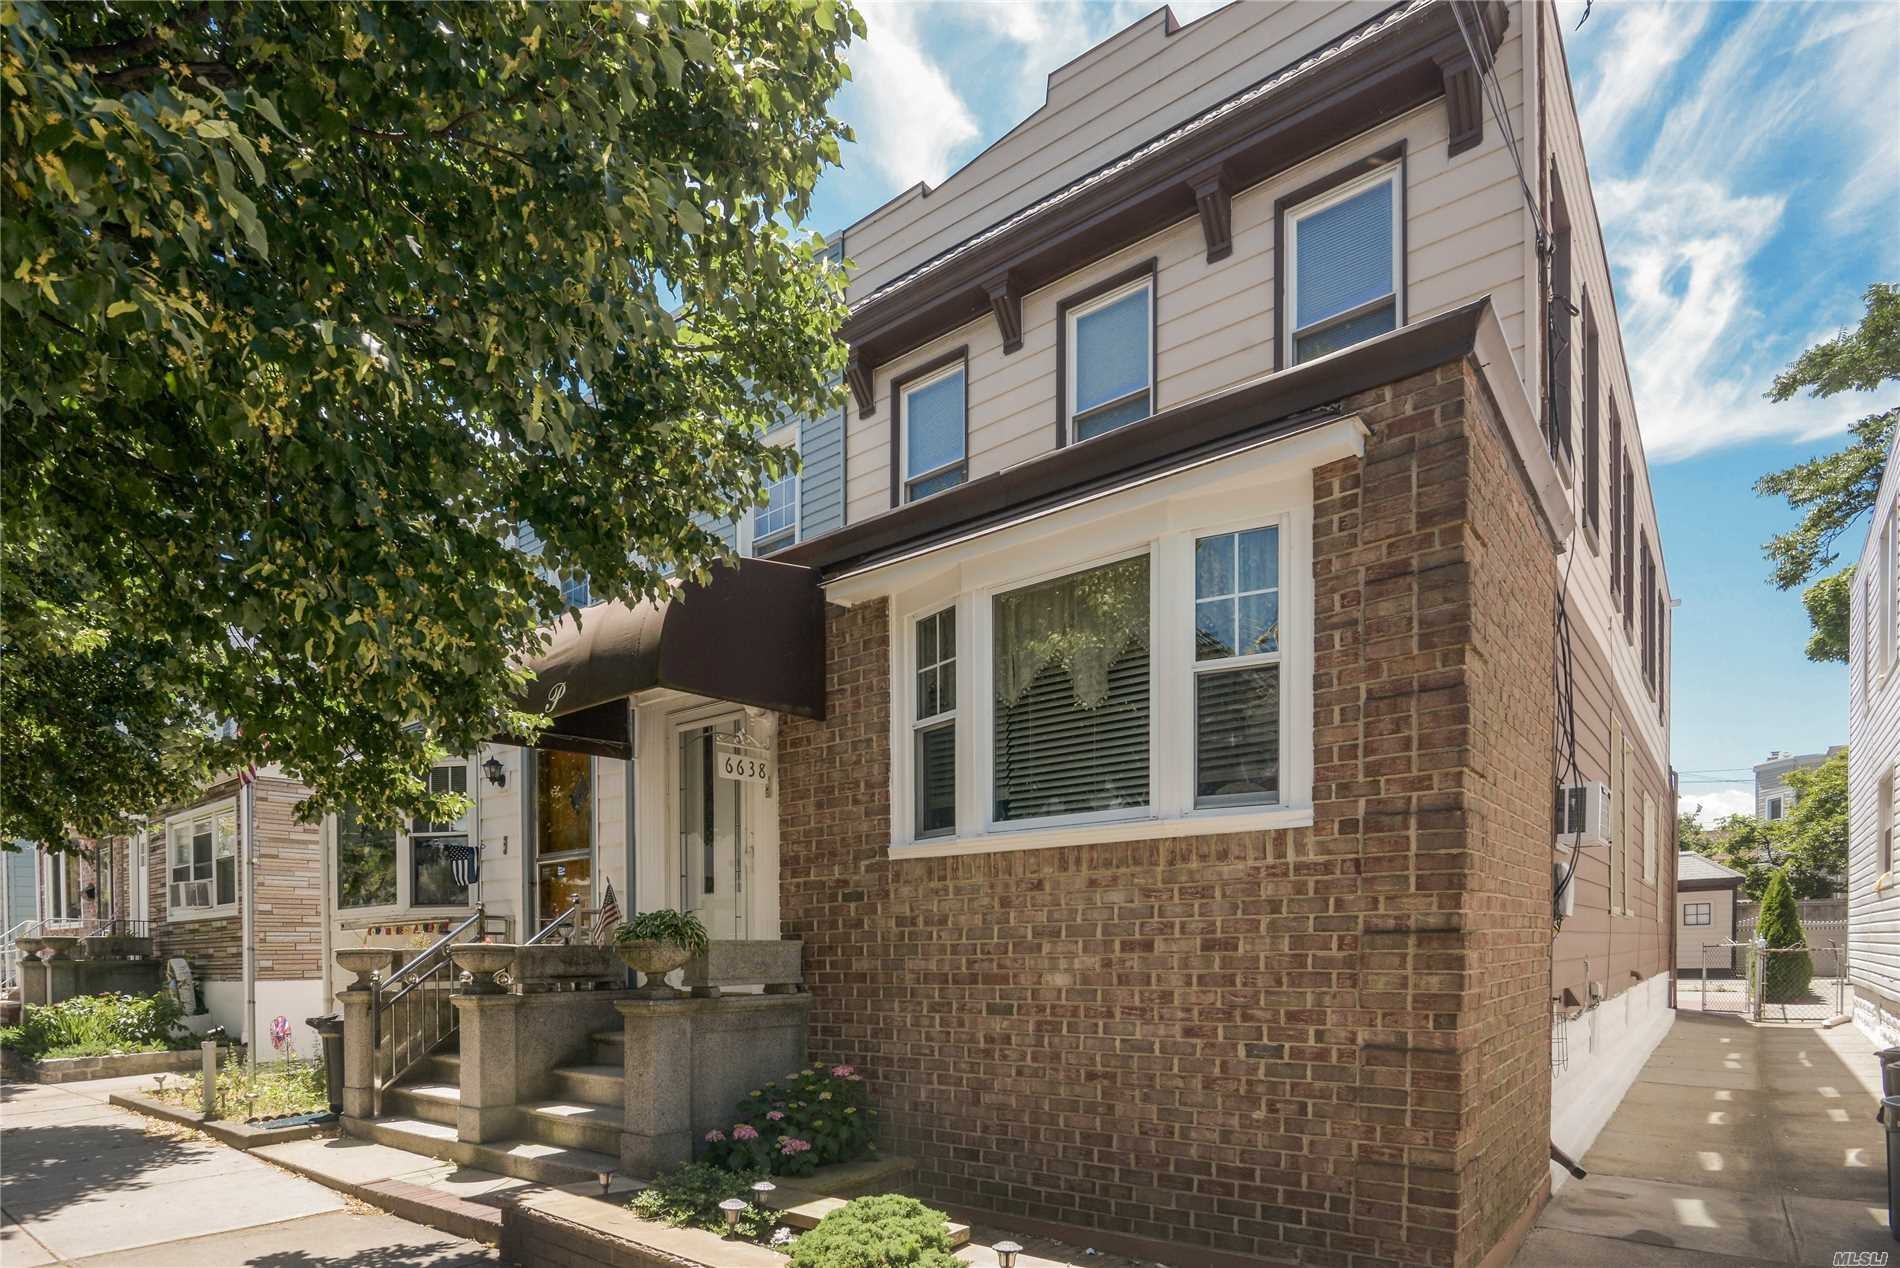 Great 2 Family Semi-Detch'd Home Located In The Heart Of Middle Village. 2 Blks From Juniper Prk. 1.5 Blks To Metro. 6 Rms Over 5, Full Fin Bsmt, Pvt Yard (Fully Cemented Private Yard), Drvwy. Move-In-Condition!